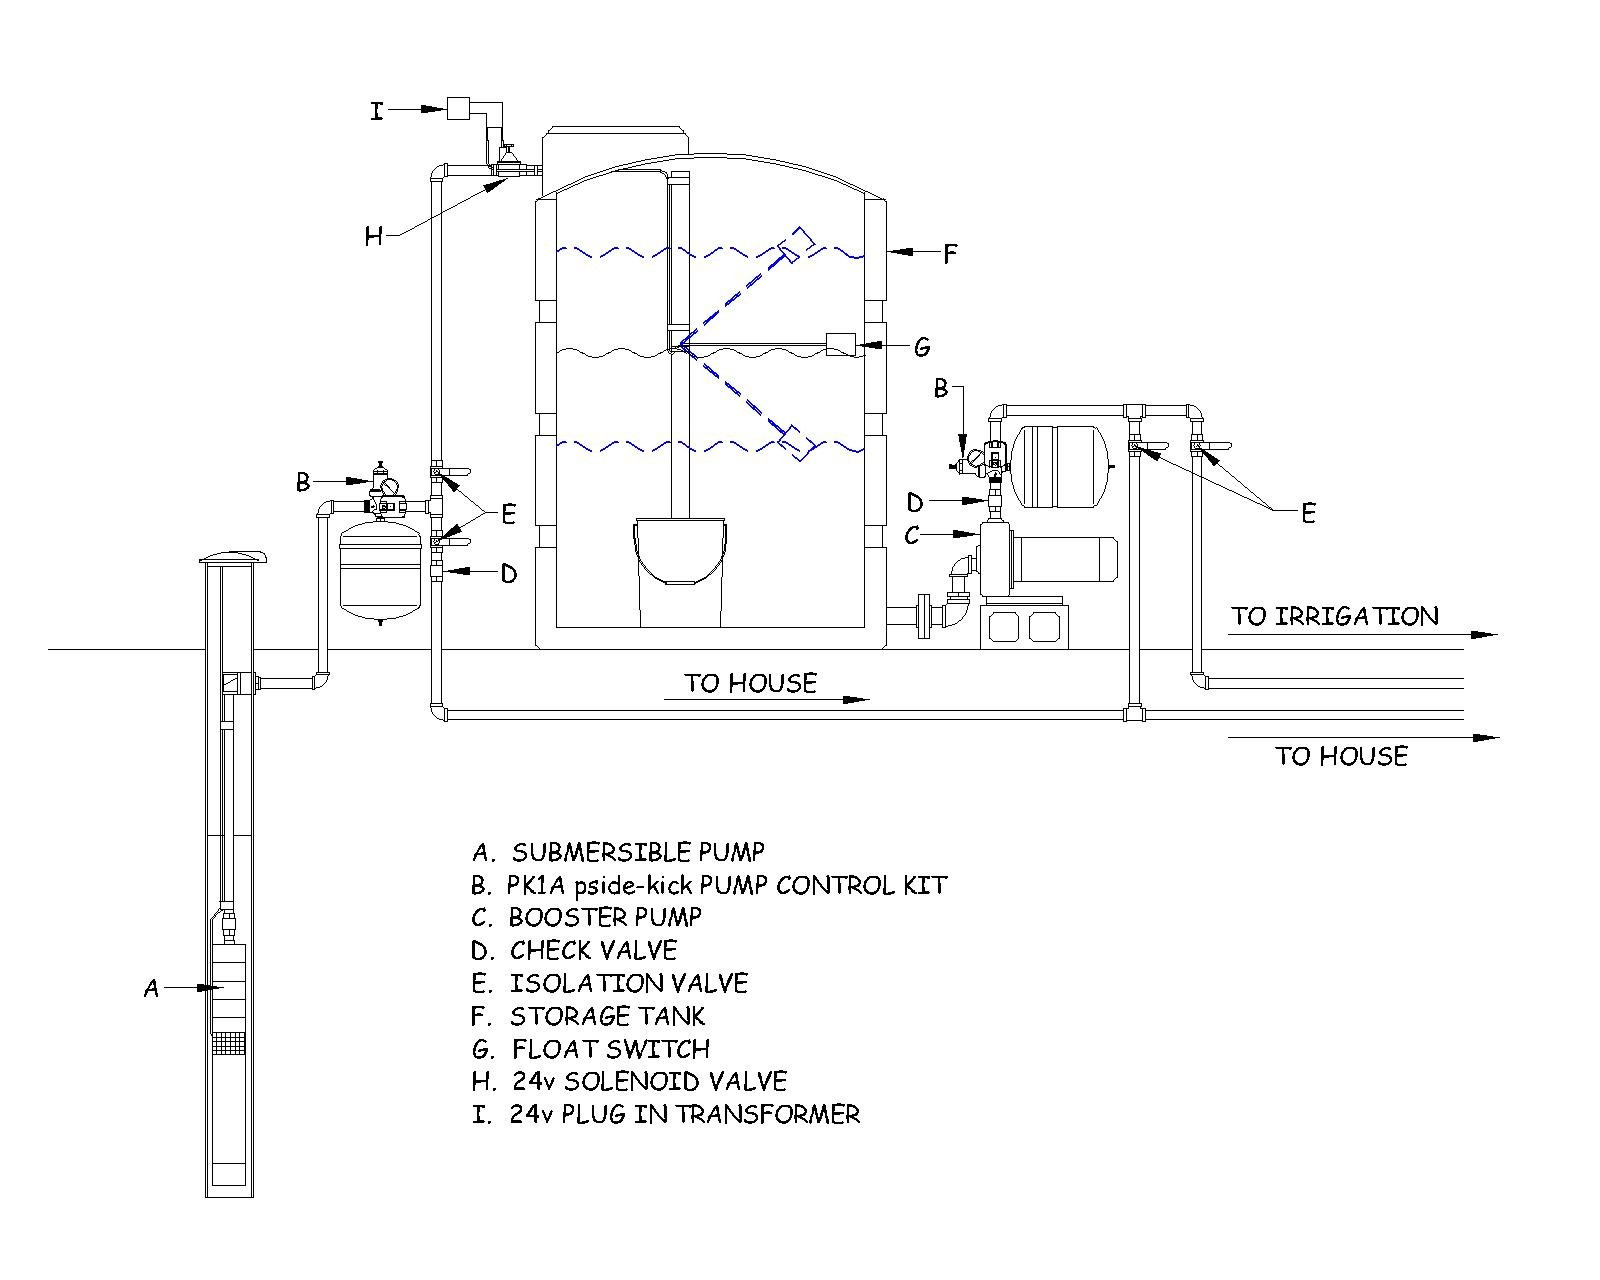 hight resolution of  air compressor pressure control switch wiring diagram on how air compressor works diagram air compressor